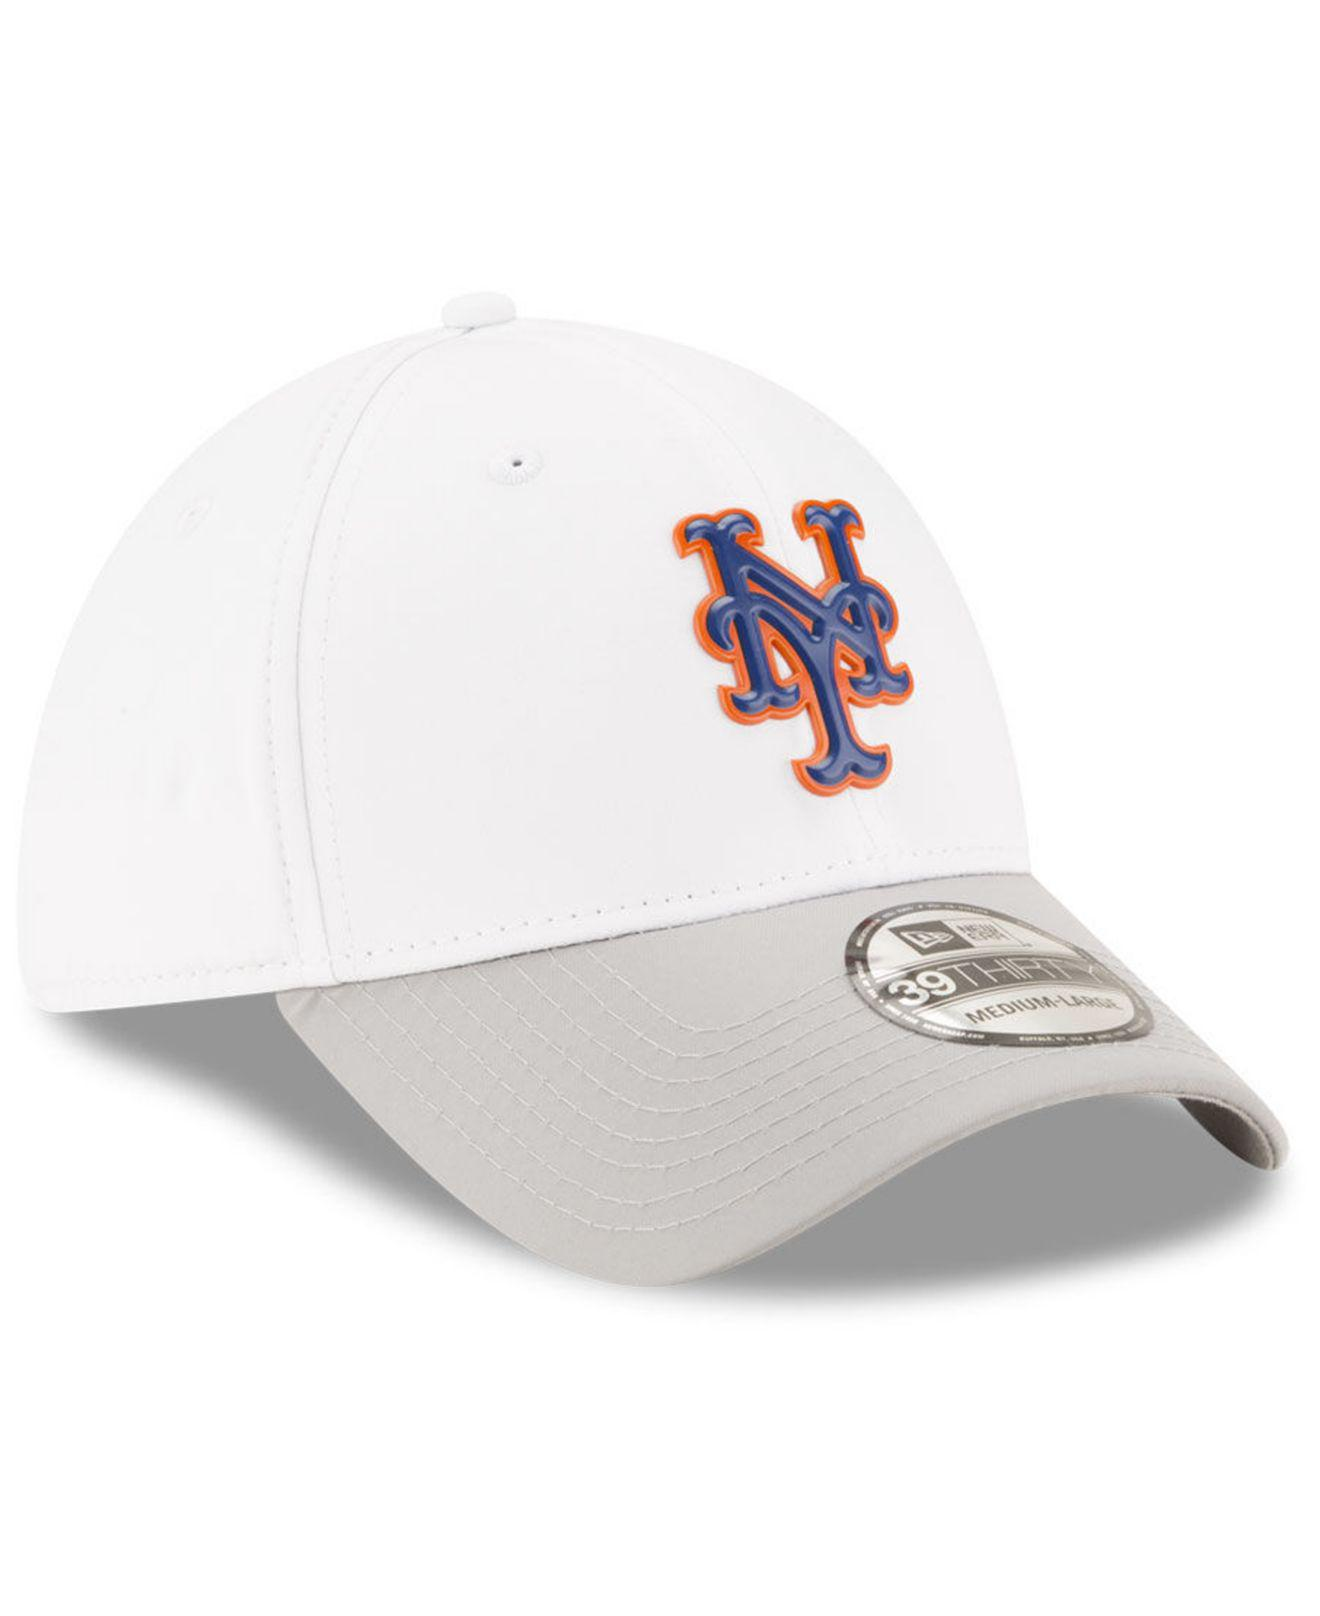 online retailer 799bb 50921 greece ktz new york mets white batting practice 39thirty cap for men lyst.  view fullscreen